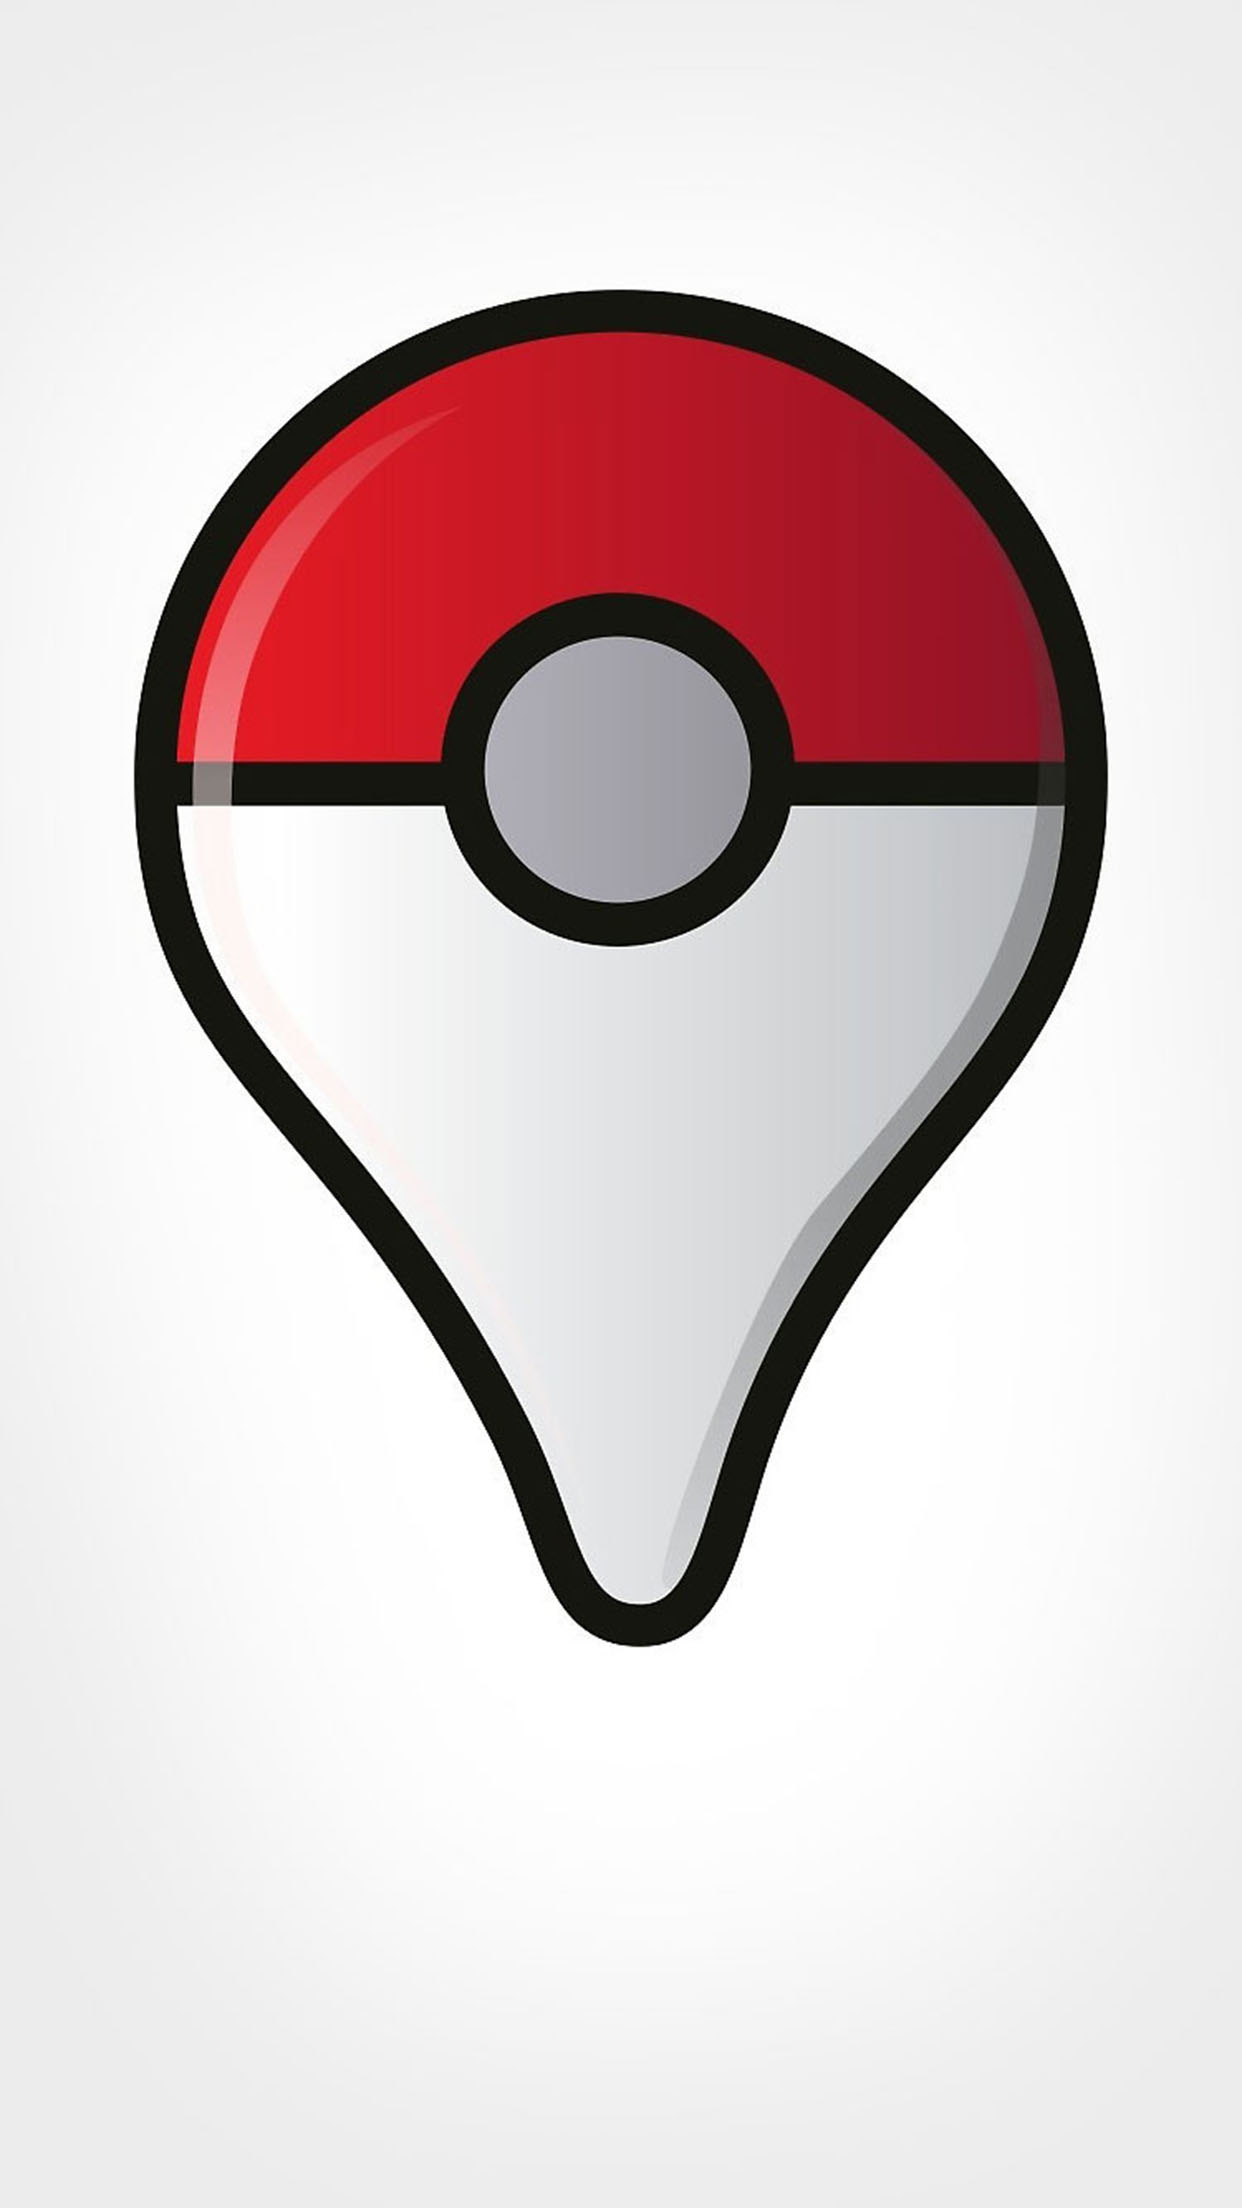 Pokémon GO Logo 3Wallpapers iPhone Parallax Pokémon GO logo